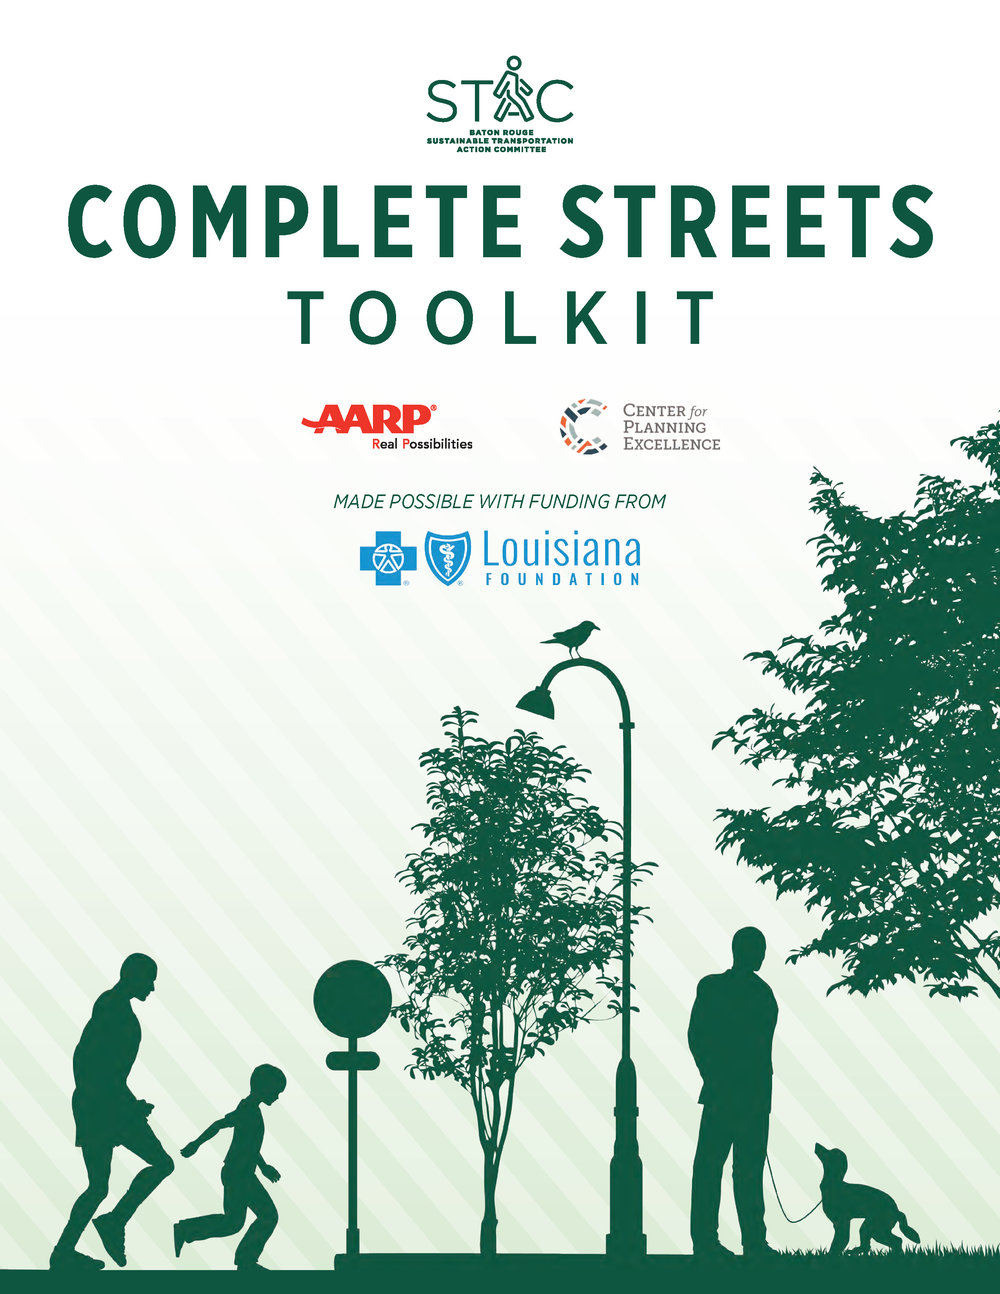 STAC_CompleteStreetToolkit-FINAL.jpg